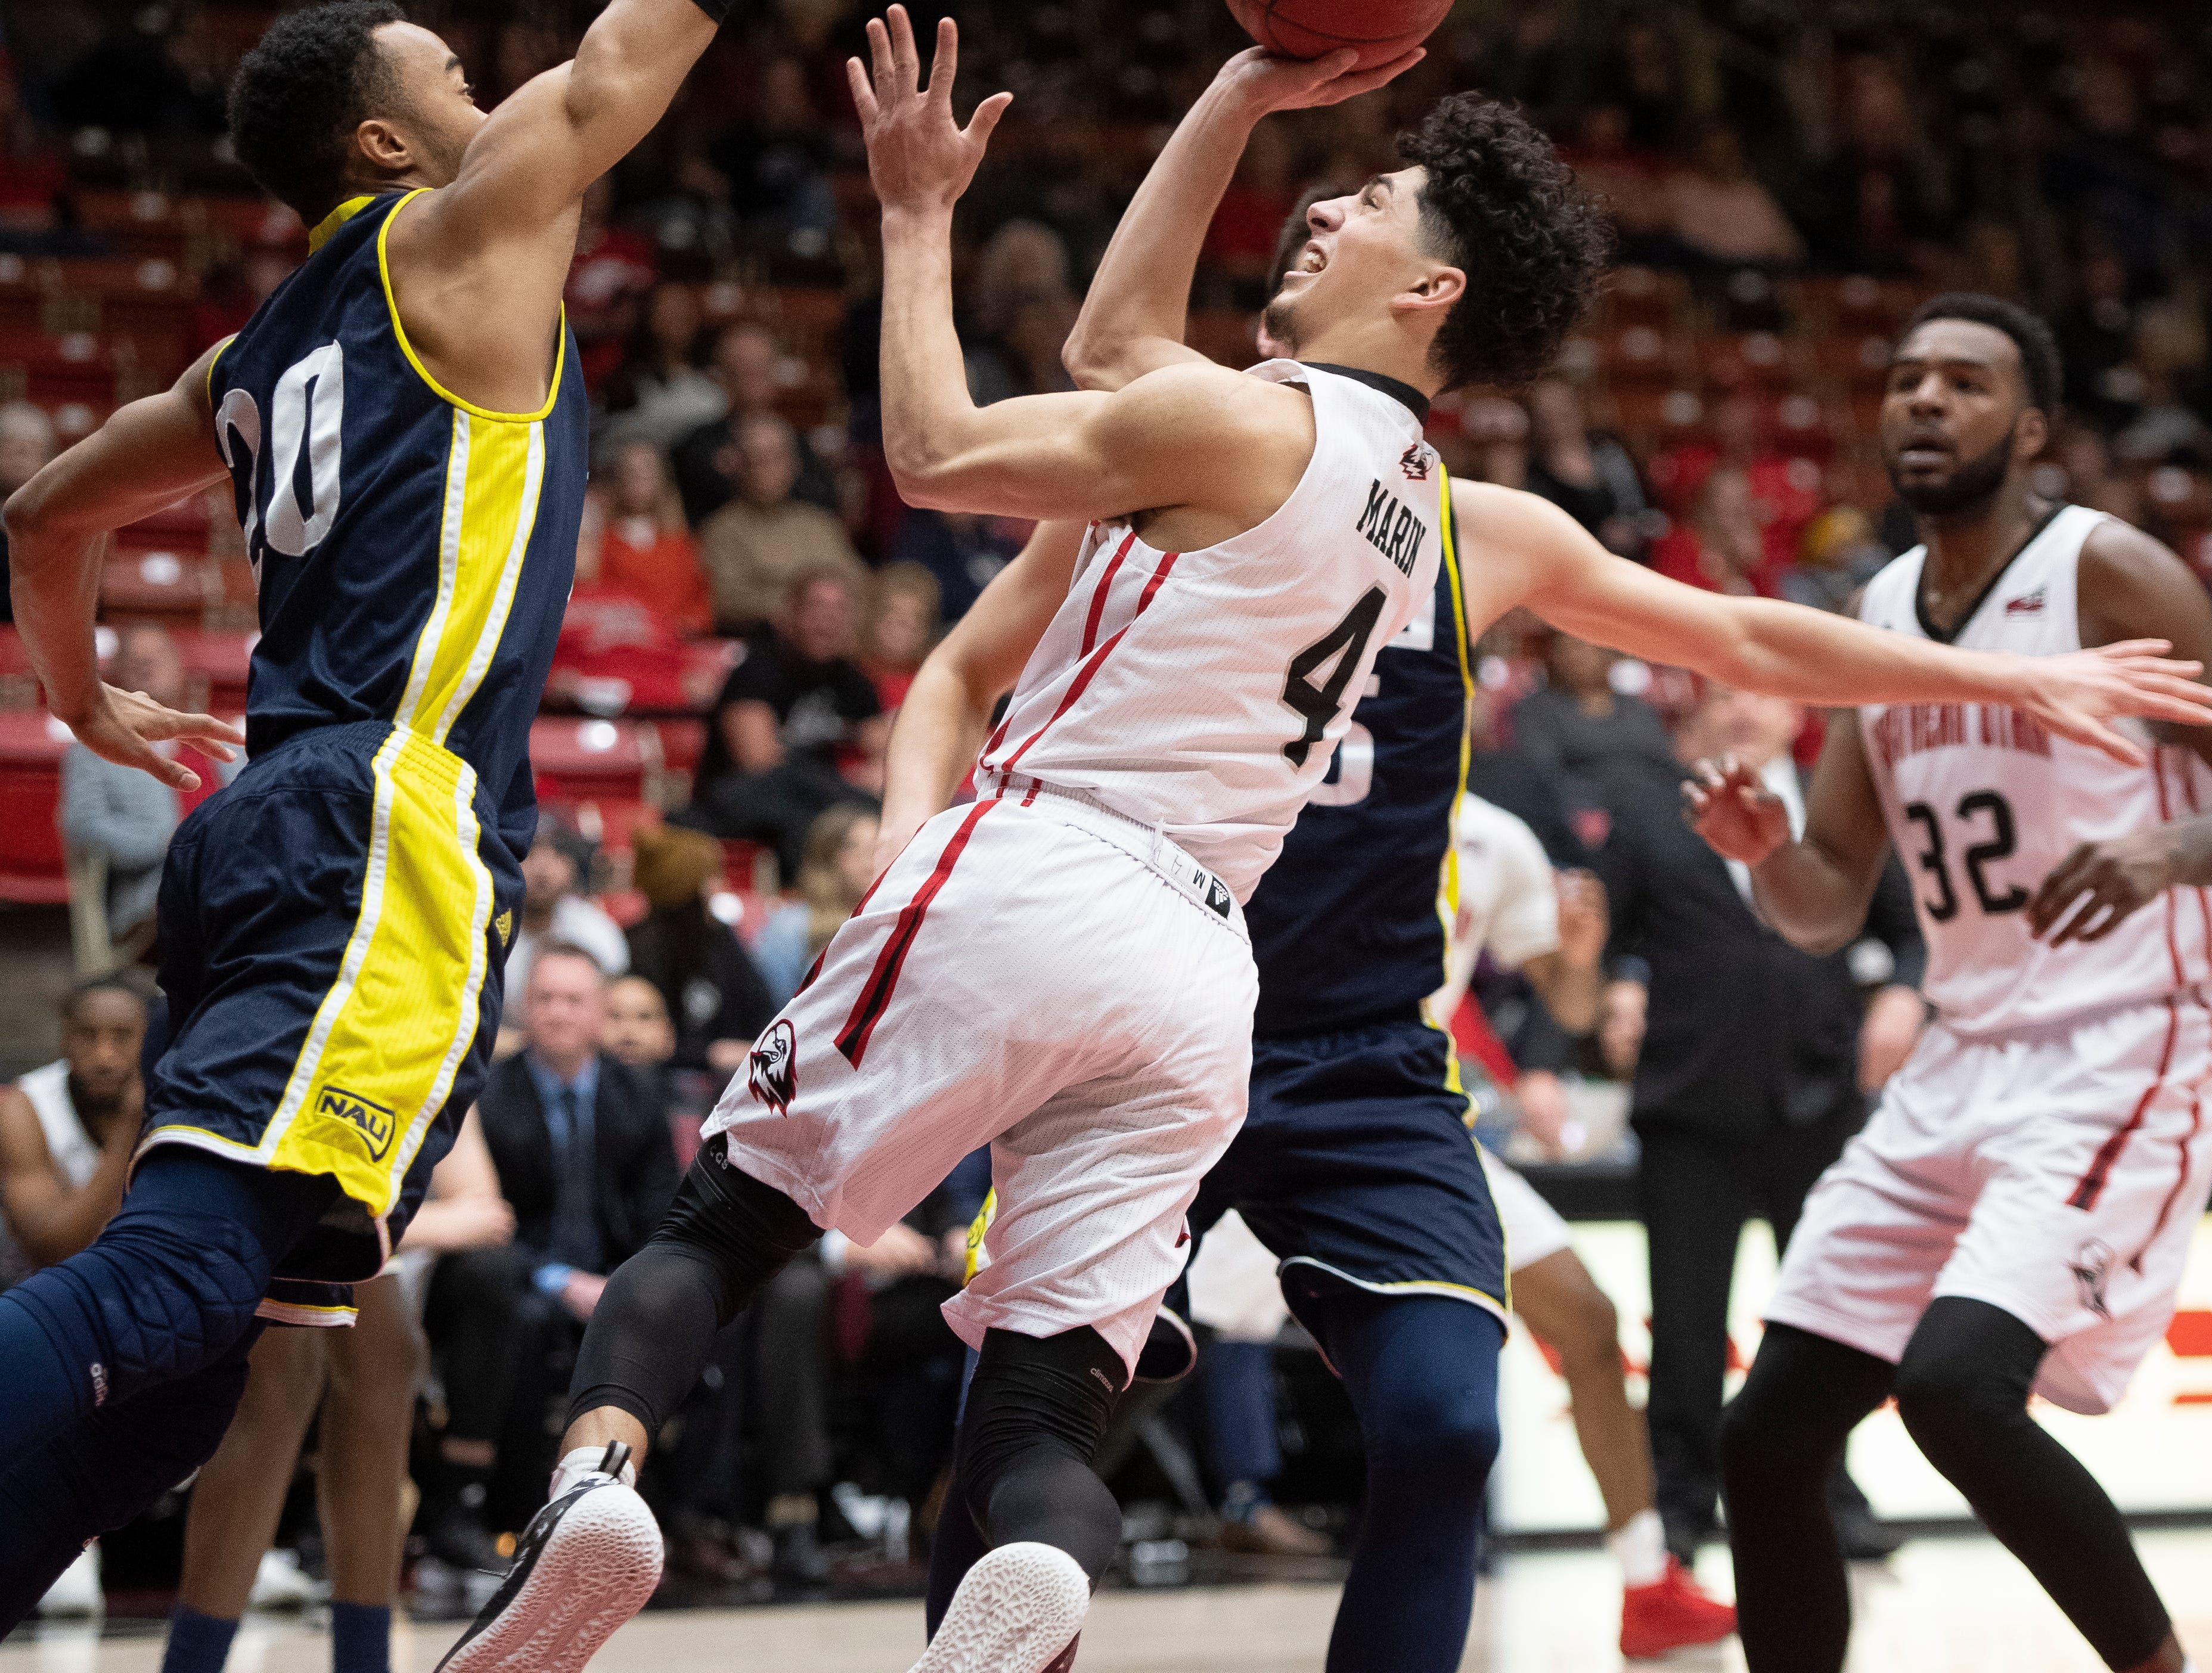 Southern Utah University sophomore Dre Marin (4) gets up close against rival Northern Arizona at the America First Event Center Saturday, January 12, 2019. SUU won, 84-82.